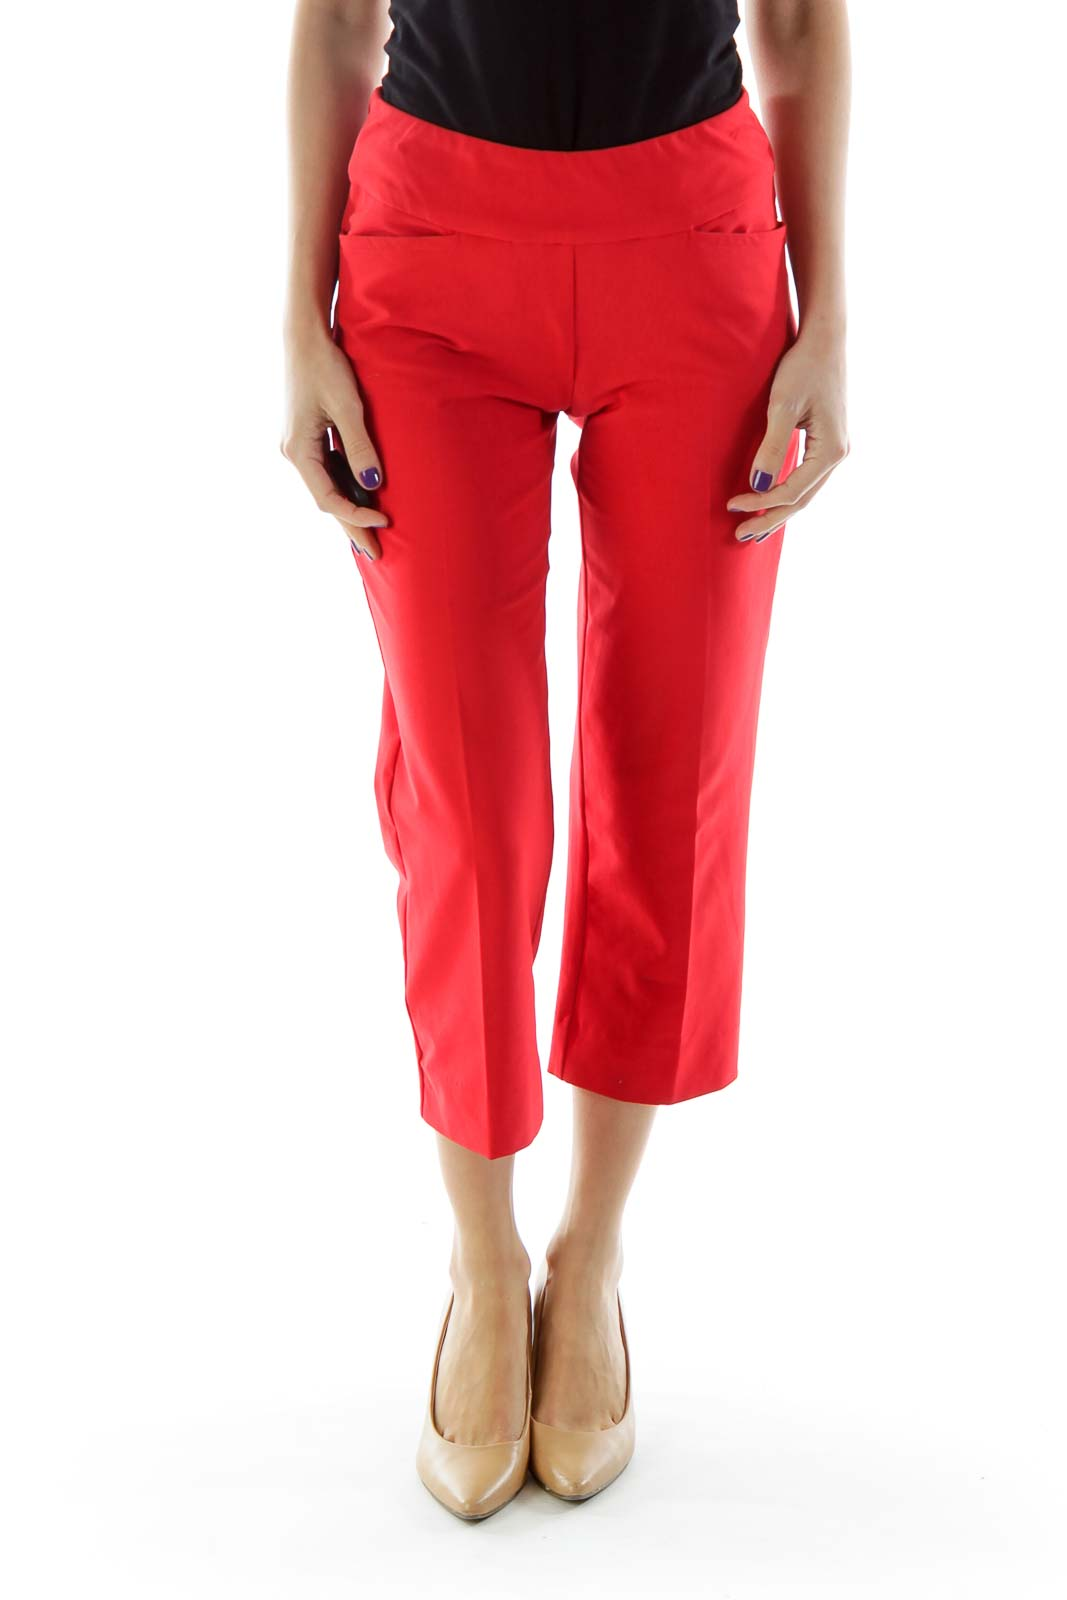 Red Pocketed Cropped Pants with Elastic Waistband Front